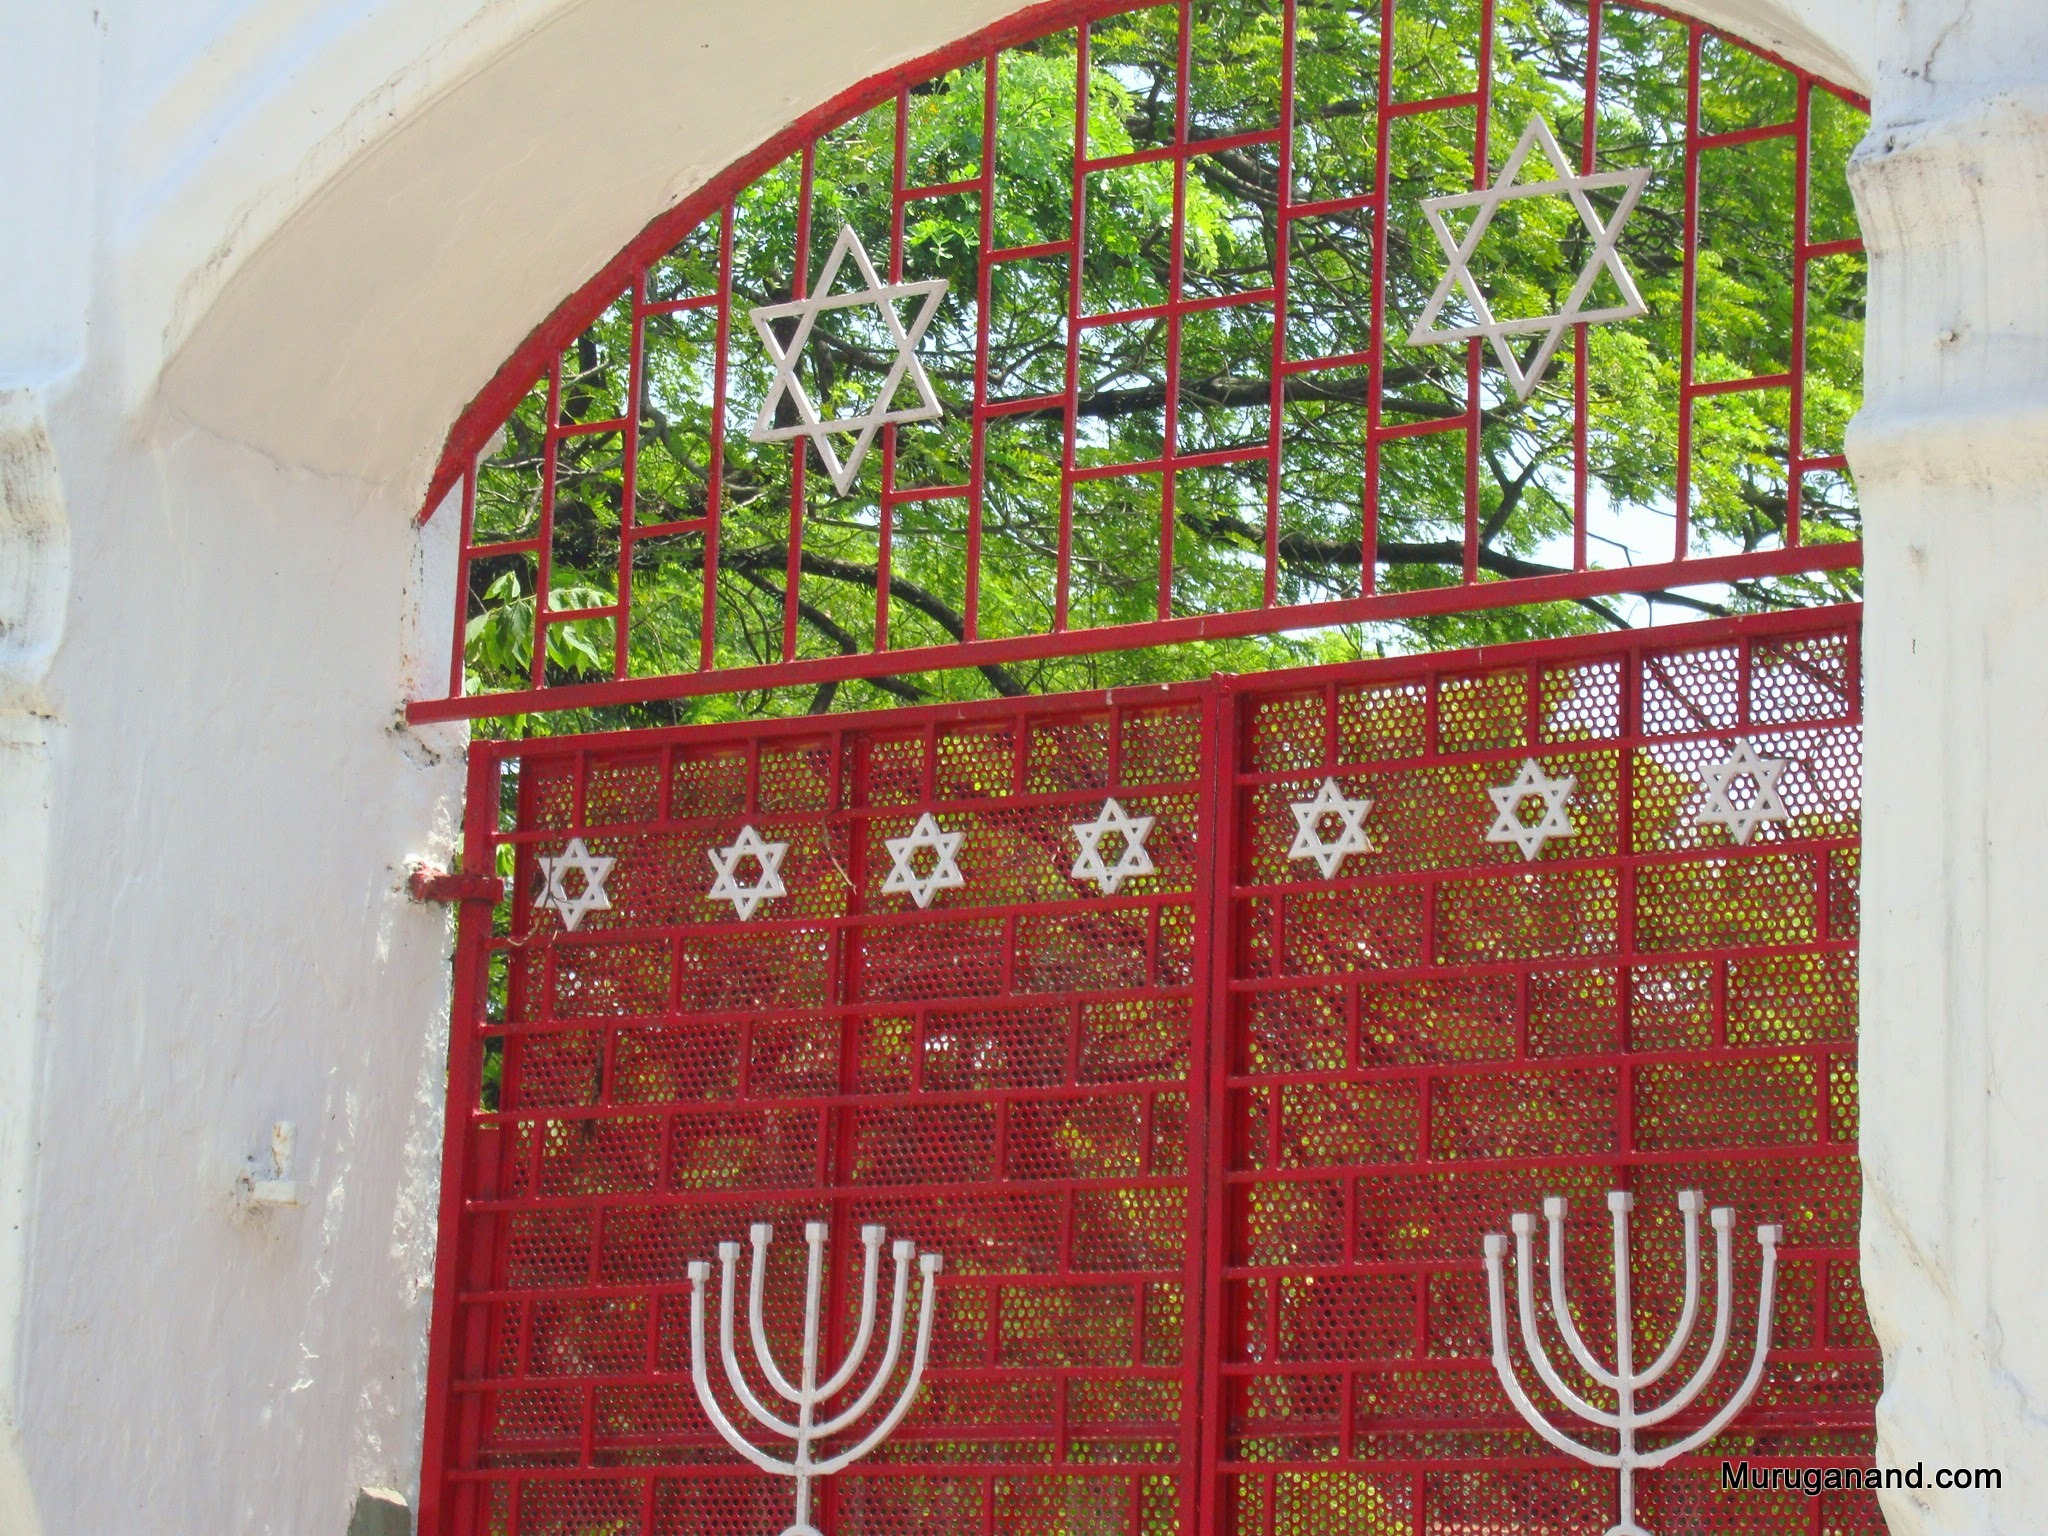 A gate nearby with stars of David and Menorah